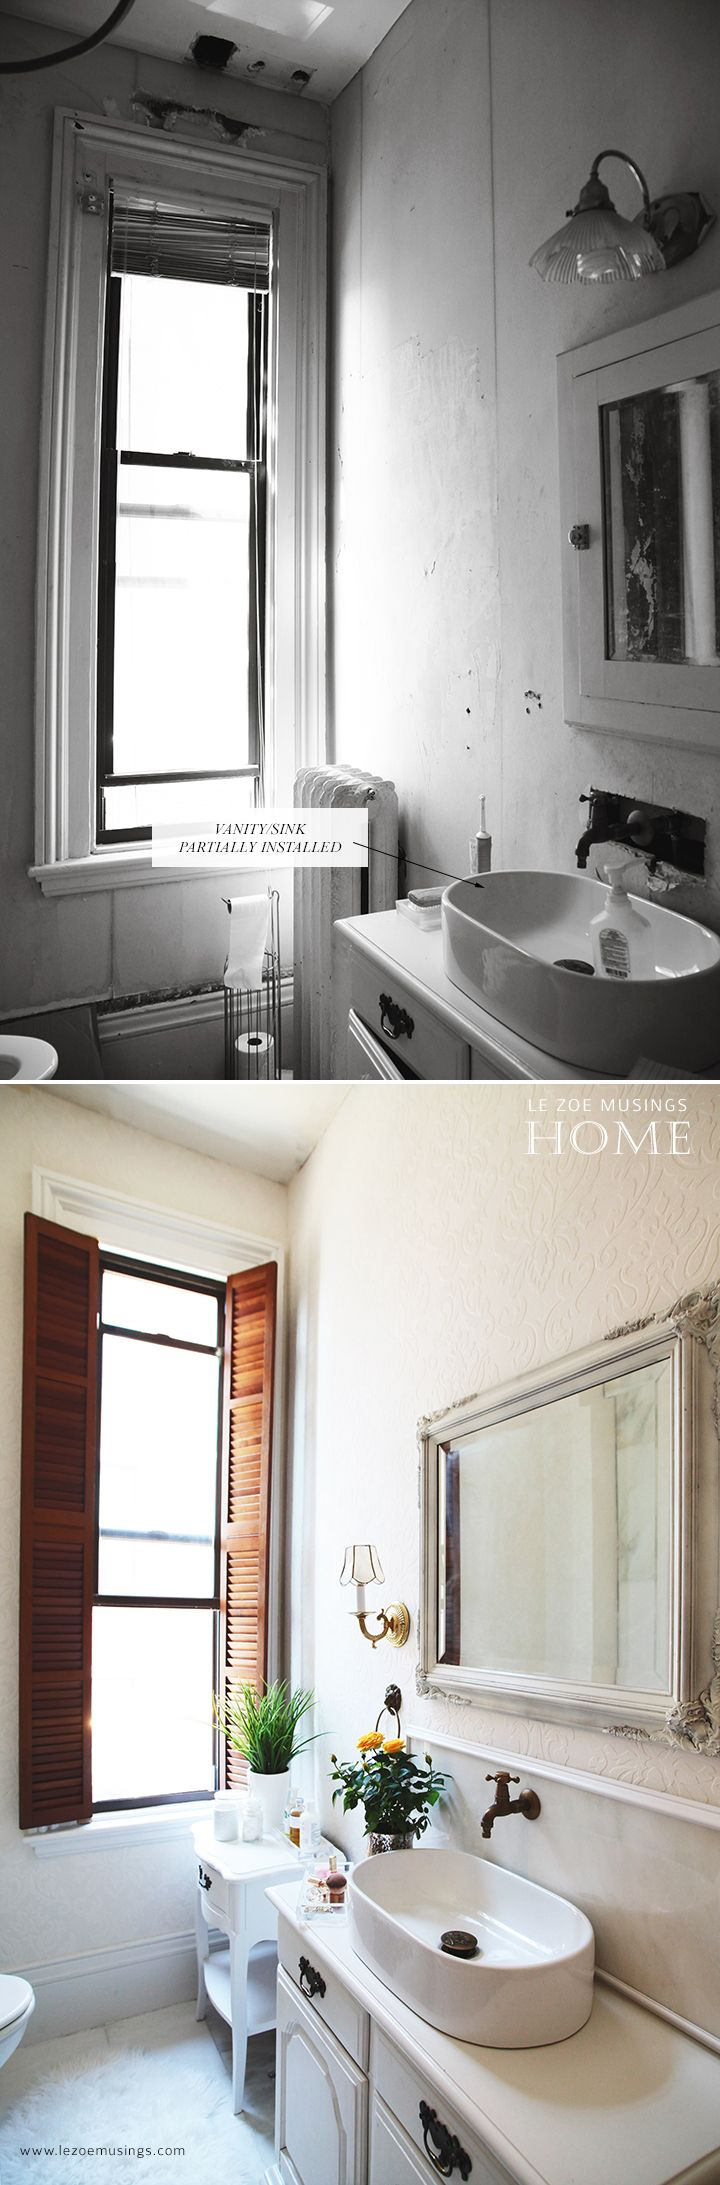 A picture of a bathroom - Diy Bathroom Vanity Makeover Using A Thrifted Hutch By Le Zoe Musings 2